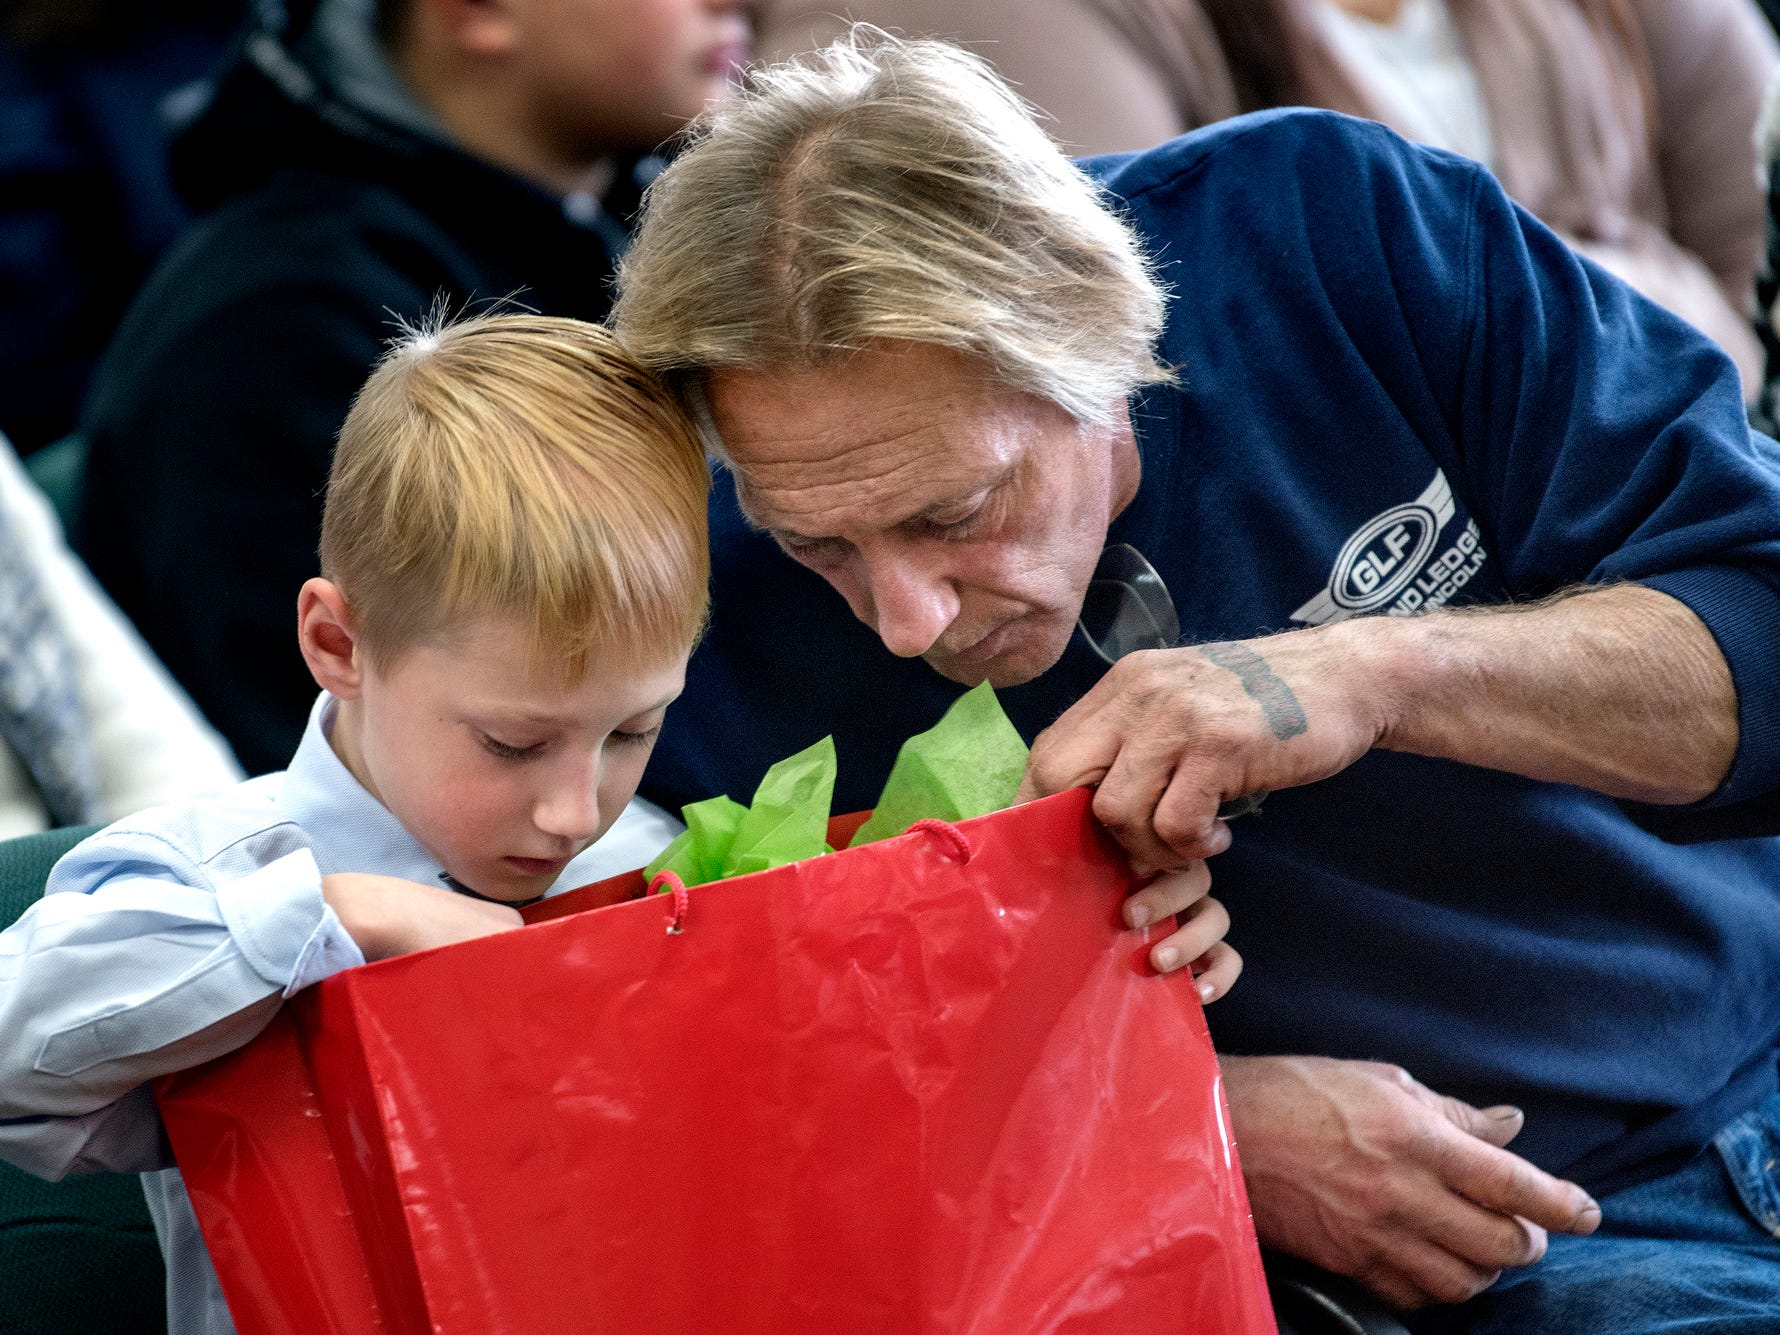 Durwood Fletcher, right, looks through a gift bag with Austin, 7, after his adoption was finalized during a Michigan Adoption Day ceremony at the Clinton County Courthouse in St. Johns. Four families finalized the adoptions of six children.